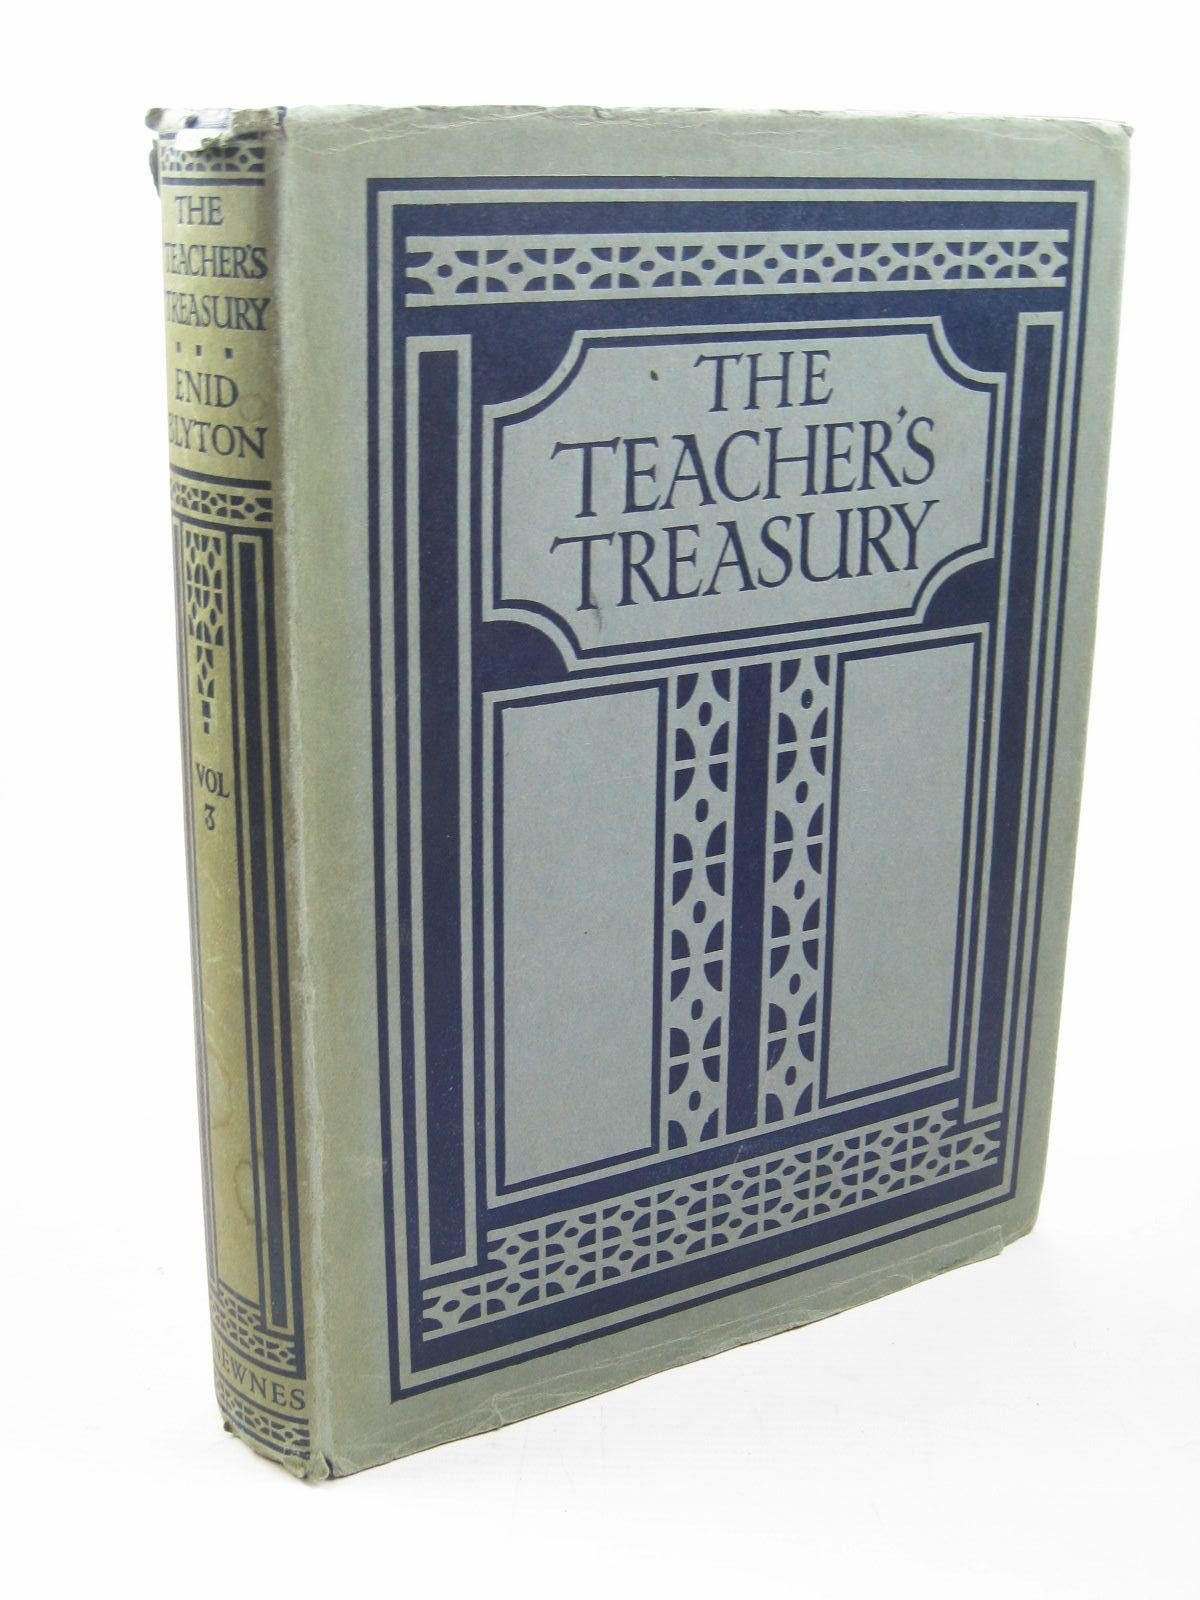 Photo of THE TEACHER'S TREASURY VOL. 3 written by Blyton, Enid published by The Home Library Book Company, George Newnes Ltd. (STOCK CODE: 1312070)  for sale by Stella & Rose's Books